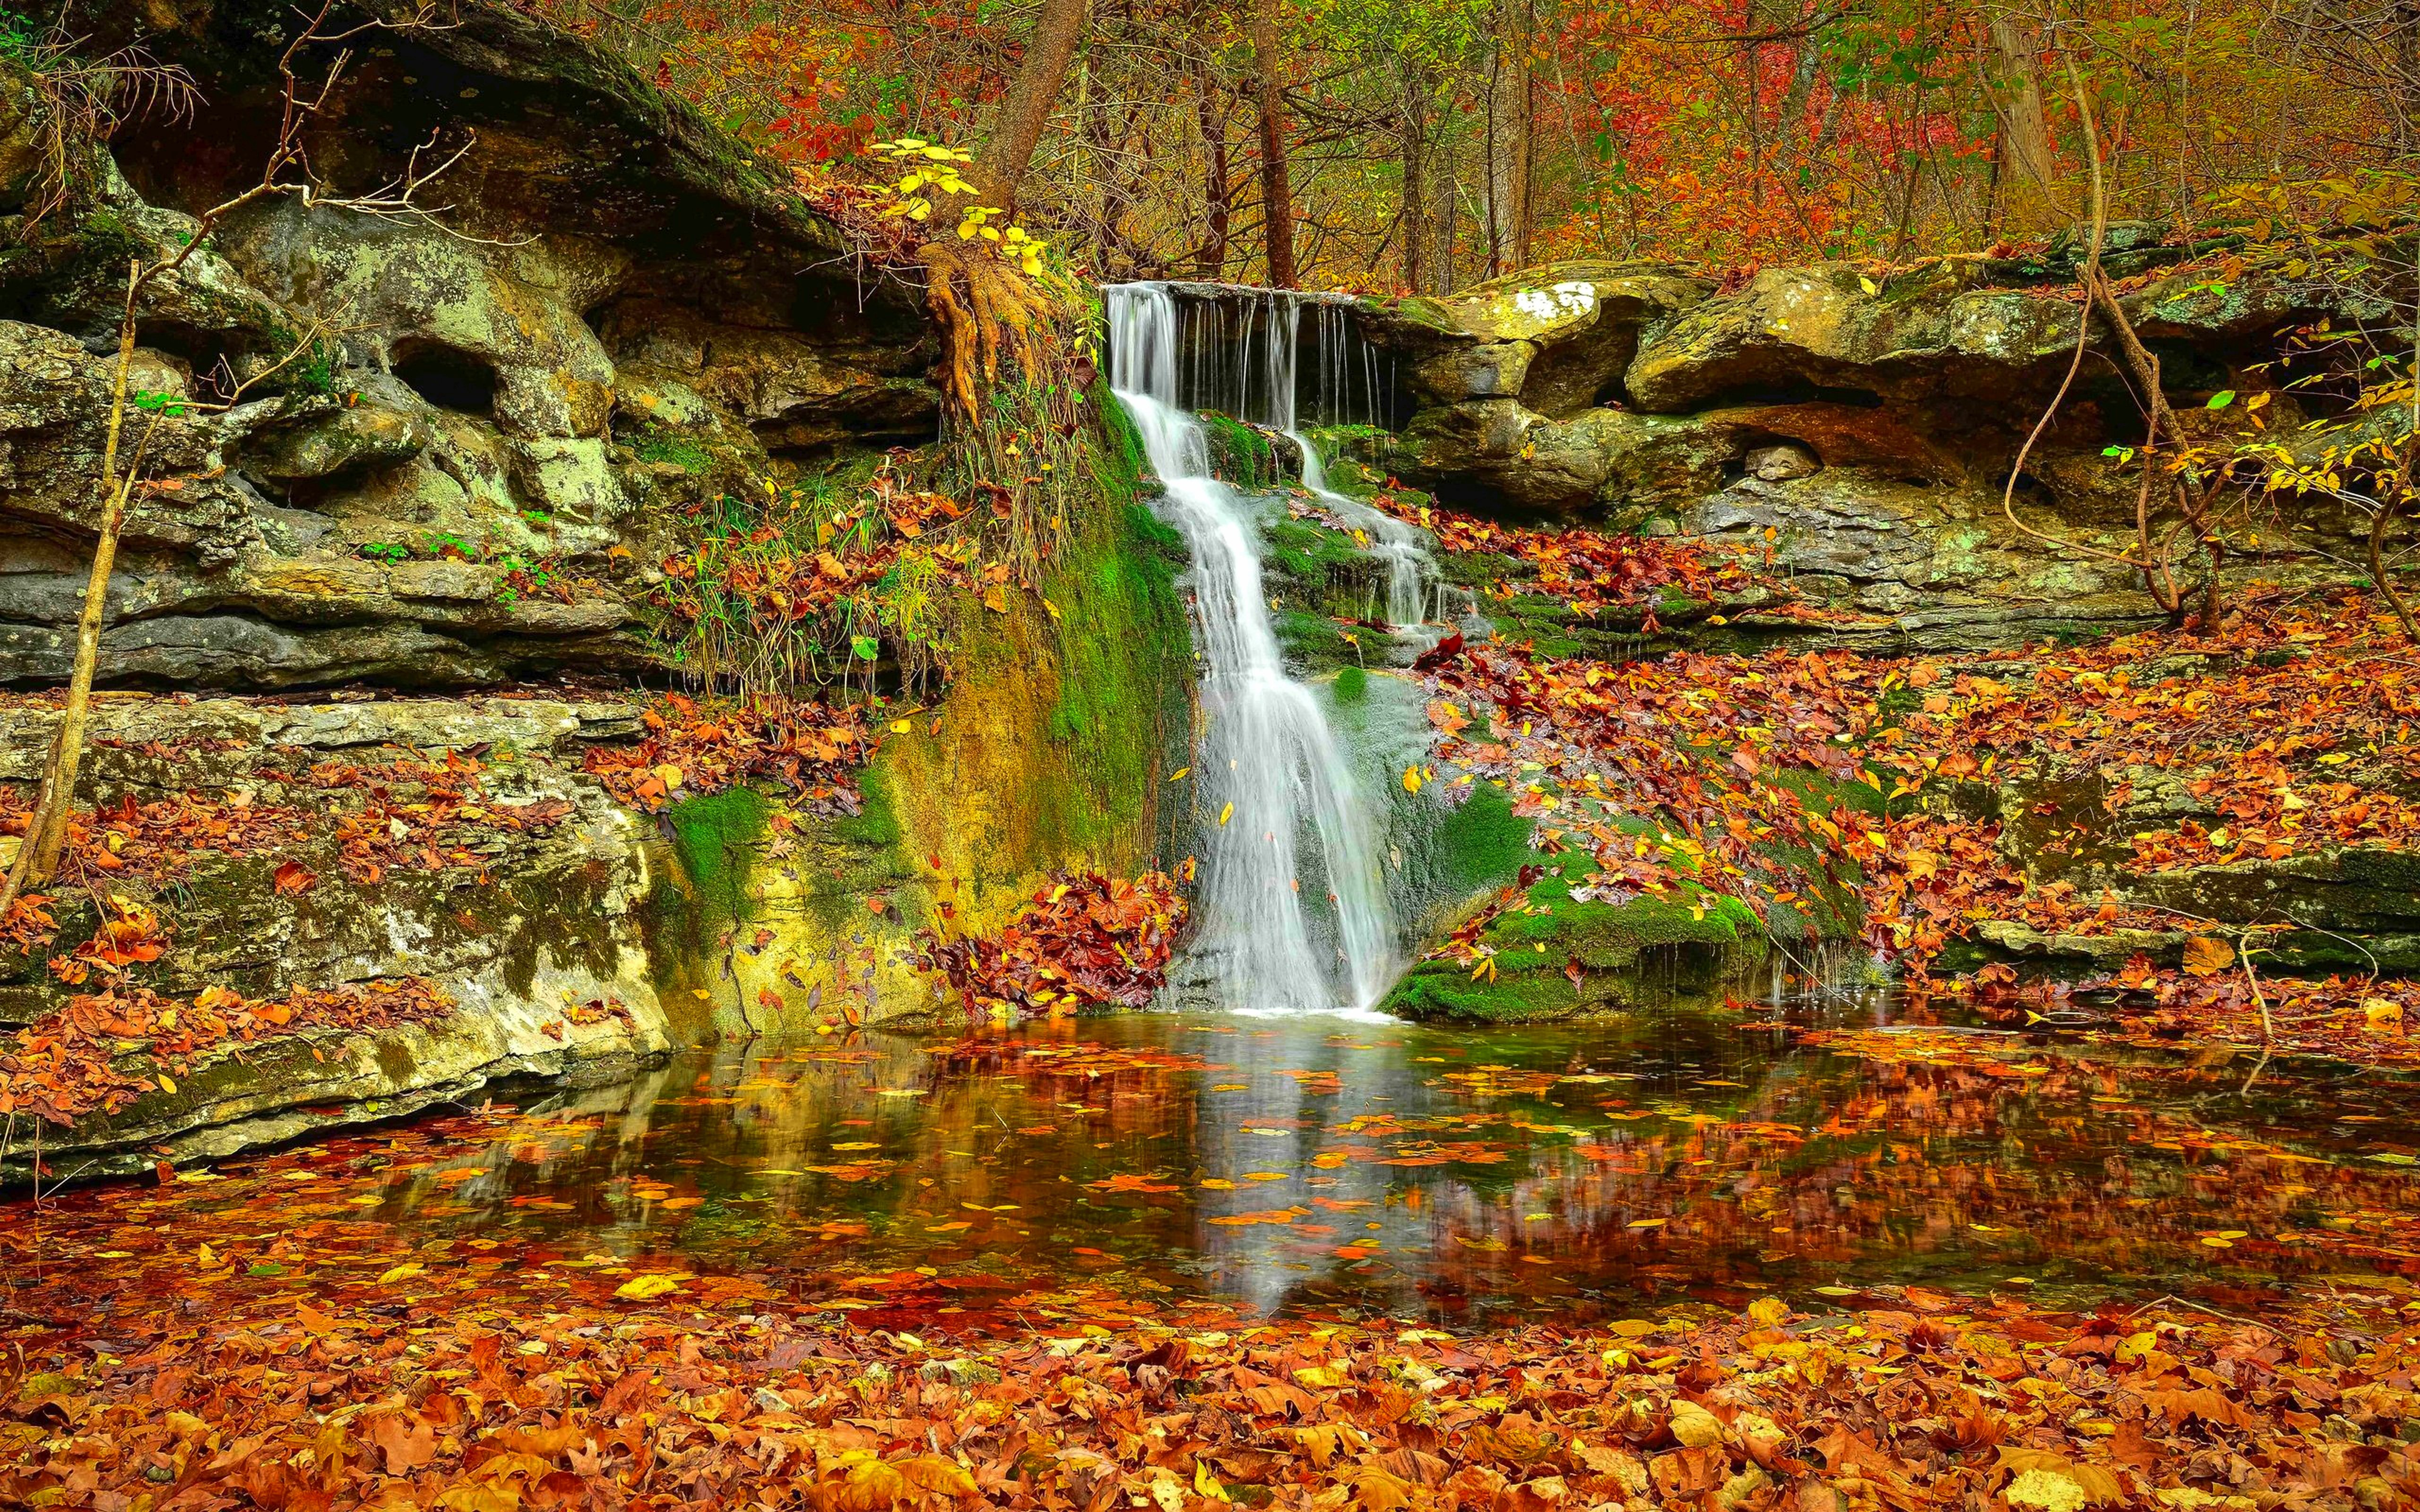 Fall Wallpaper For Large Monitors Waterfall Autumn Lovely Stream Fall Nature Leaves